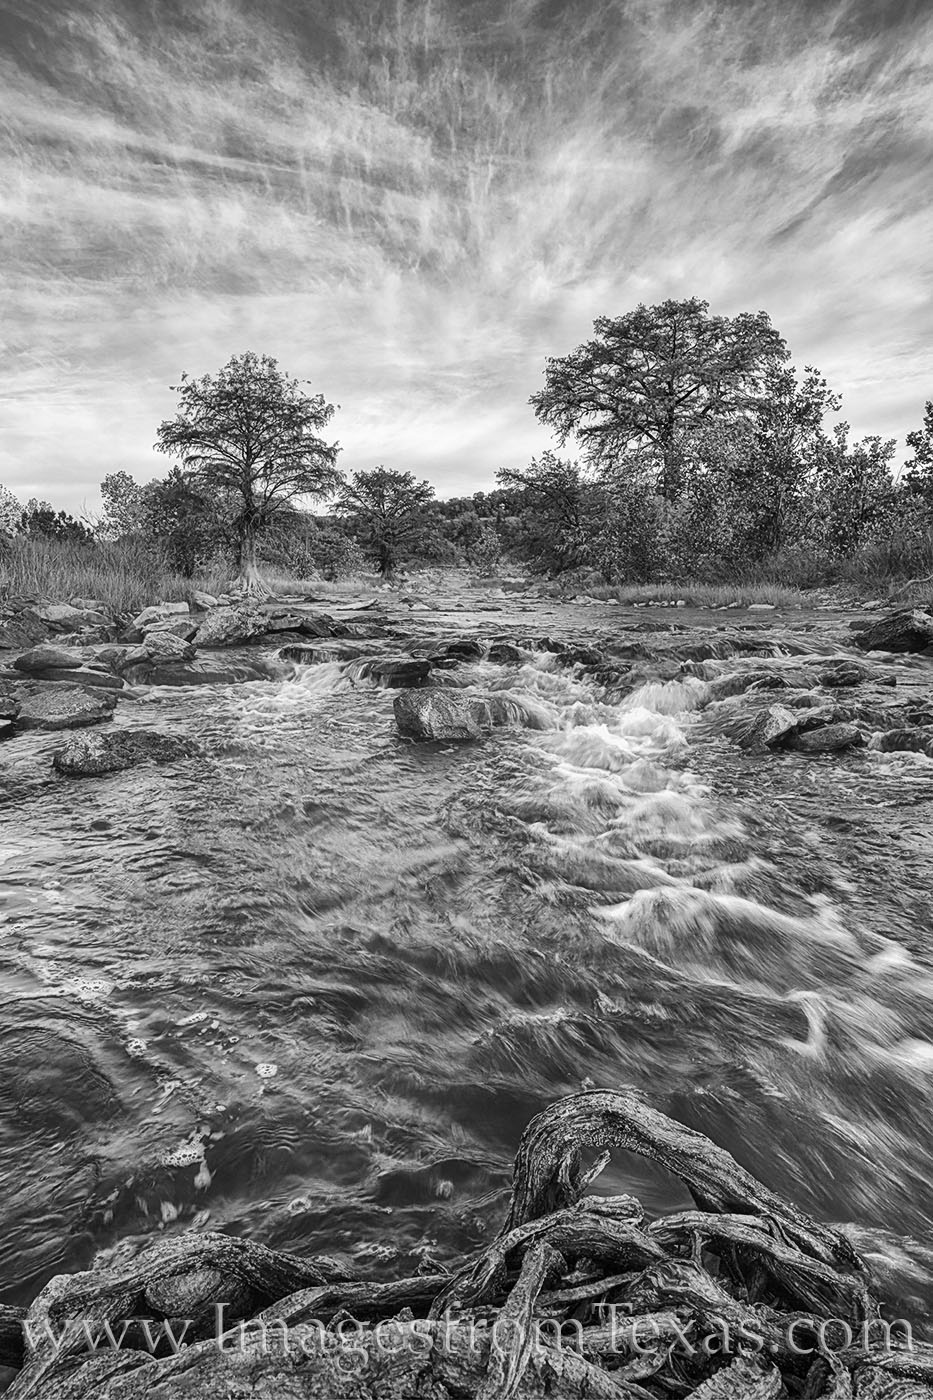 pedernales river, morning, november, black and white, hill country, fall, photo